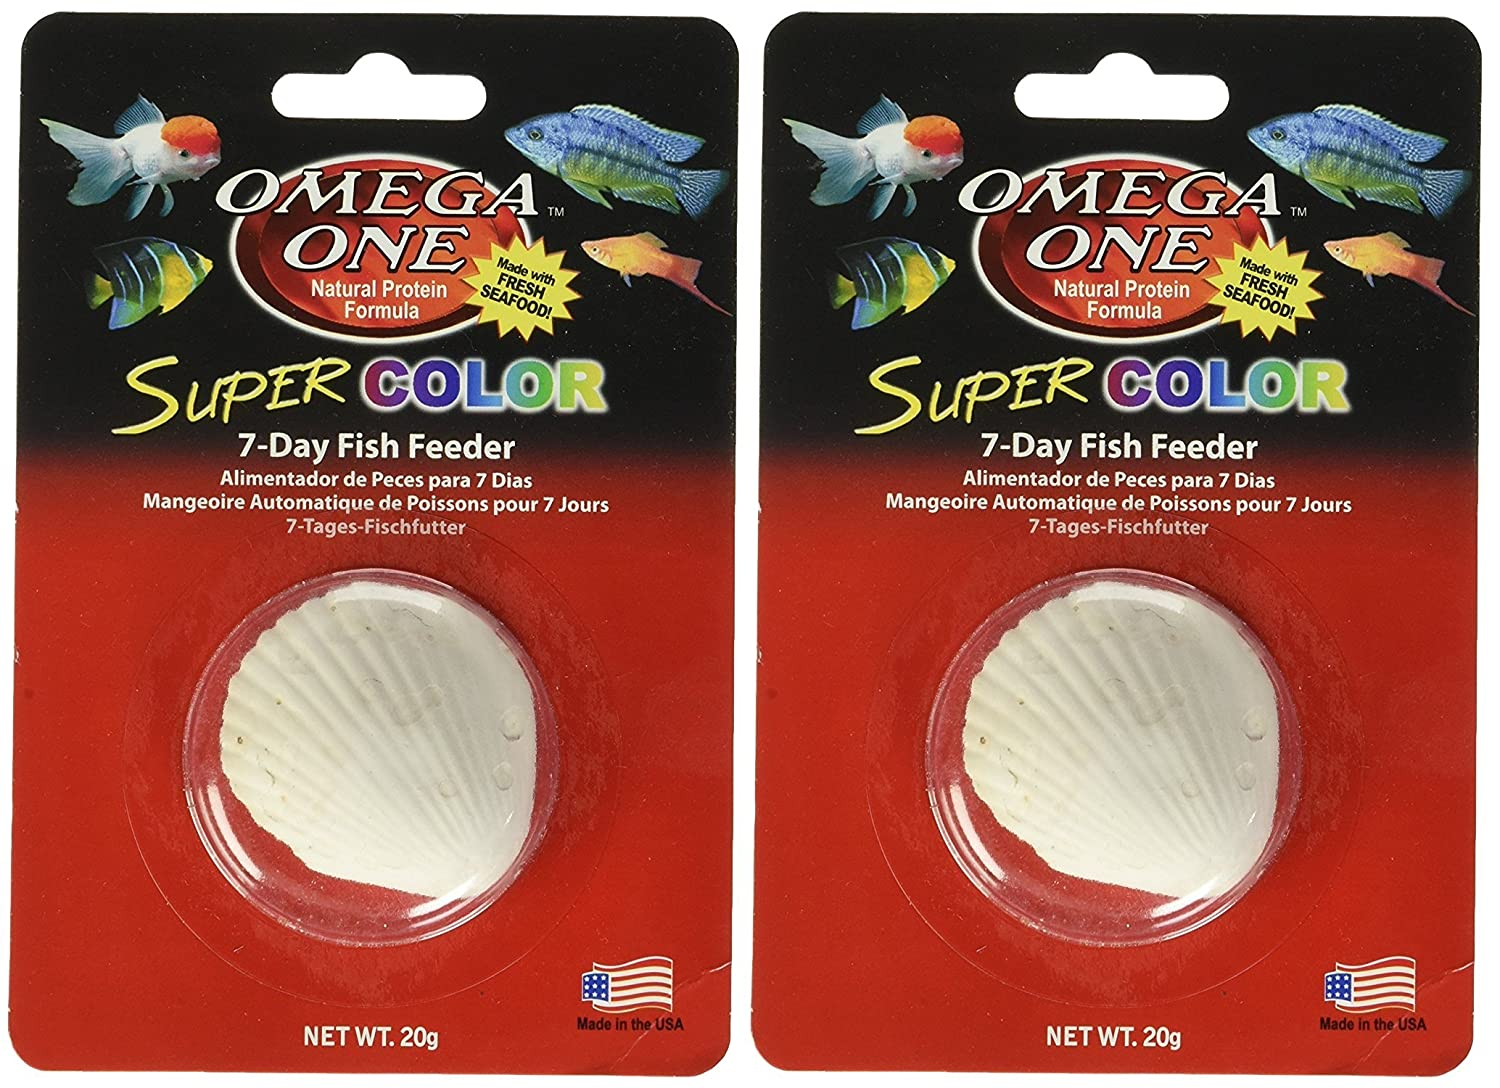 Amazon.com : Omega One Super Color 7-Day Vacation Fish Feeders (2 Feeders) : Pet Supplies